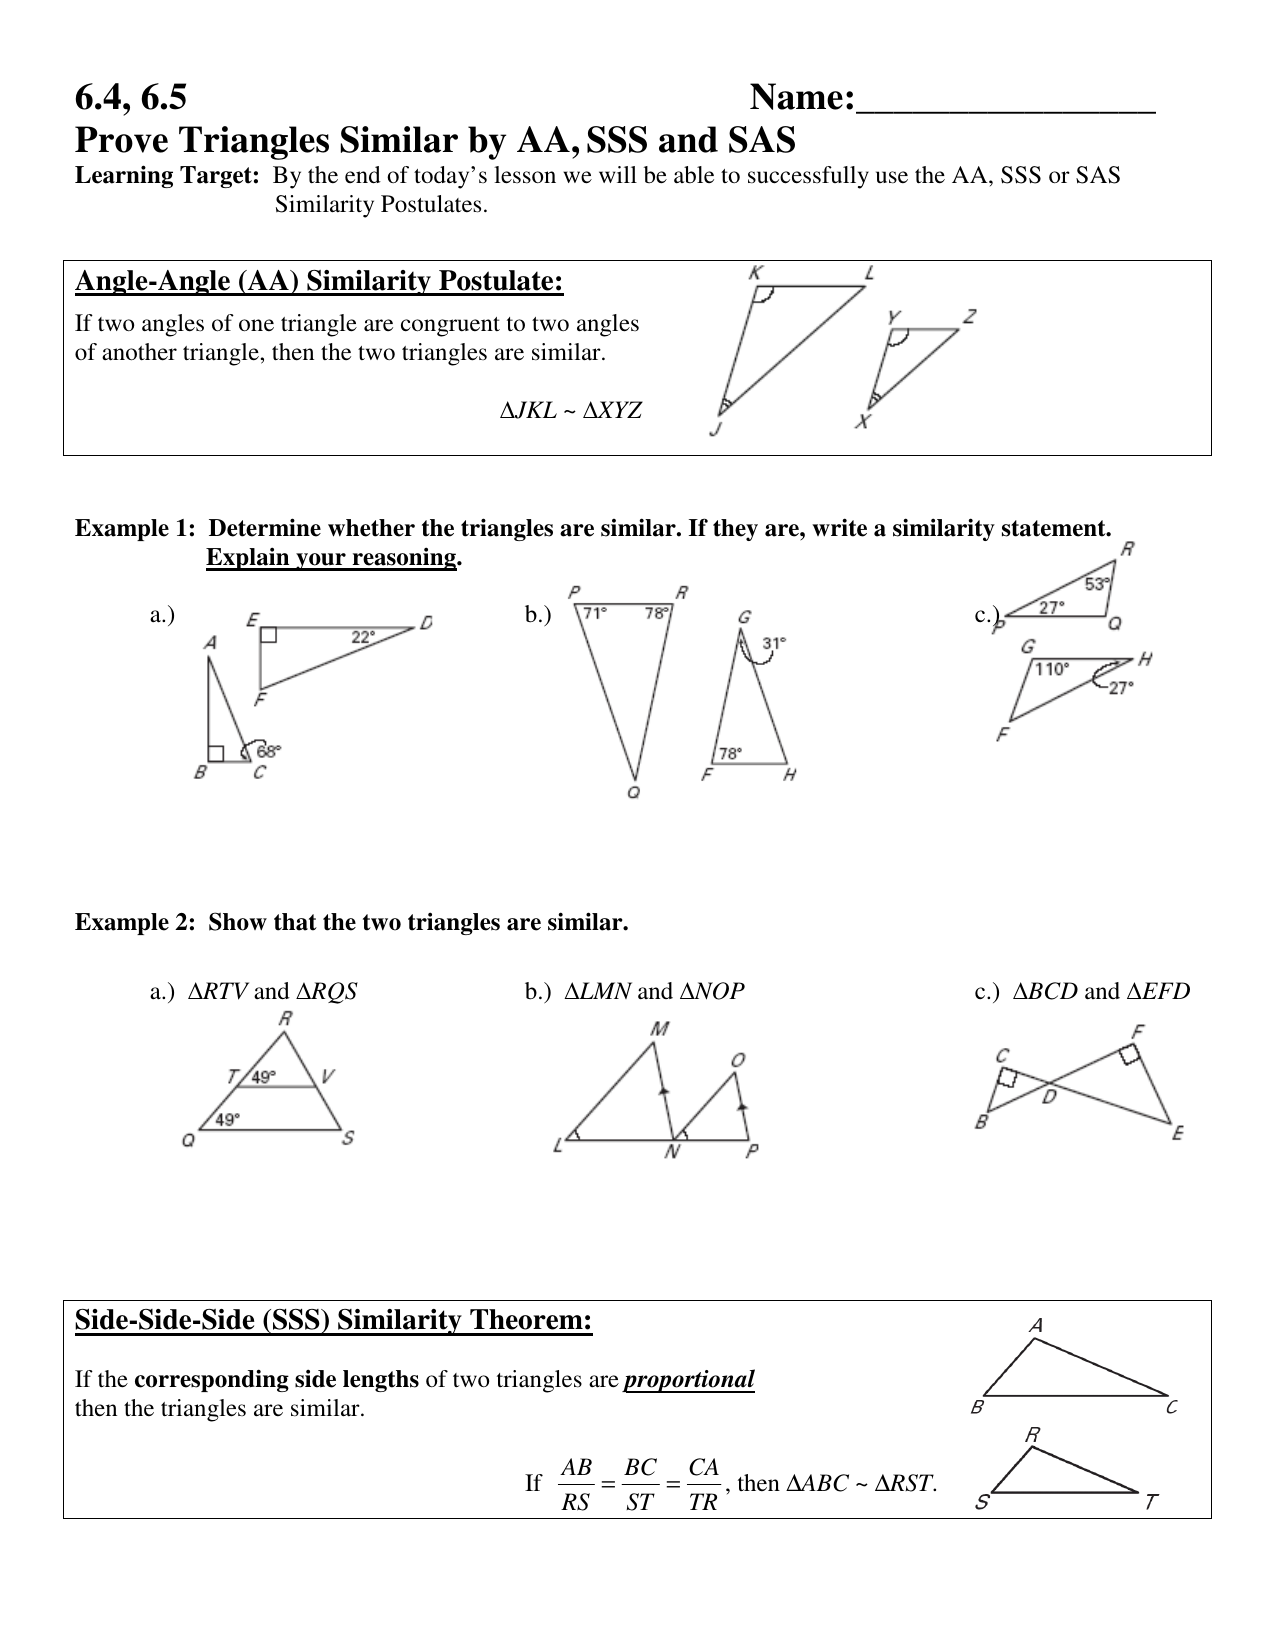 Prove Triangles Similar by AA,SSS and SAS